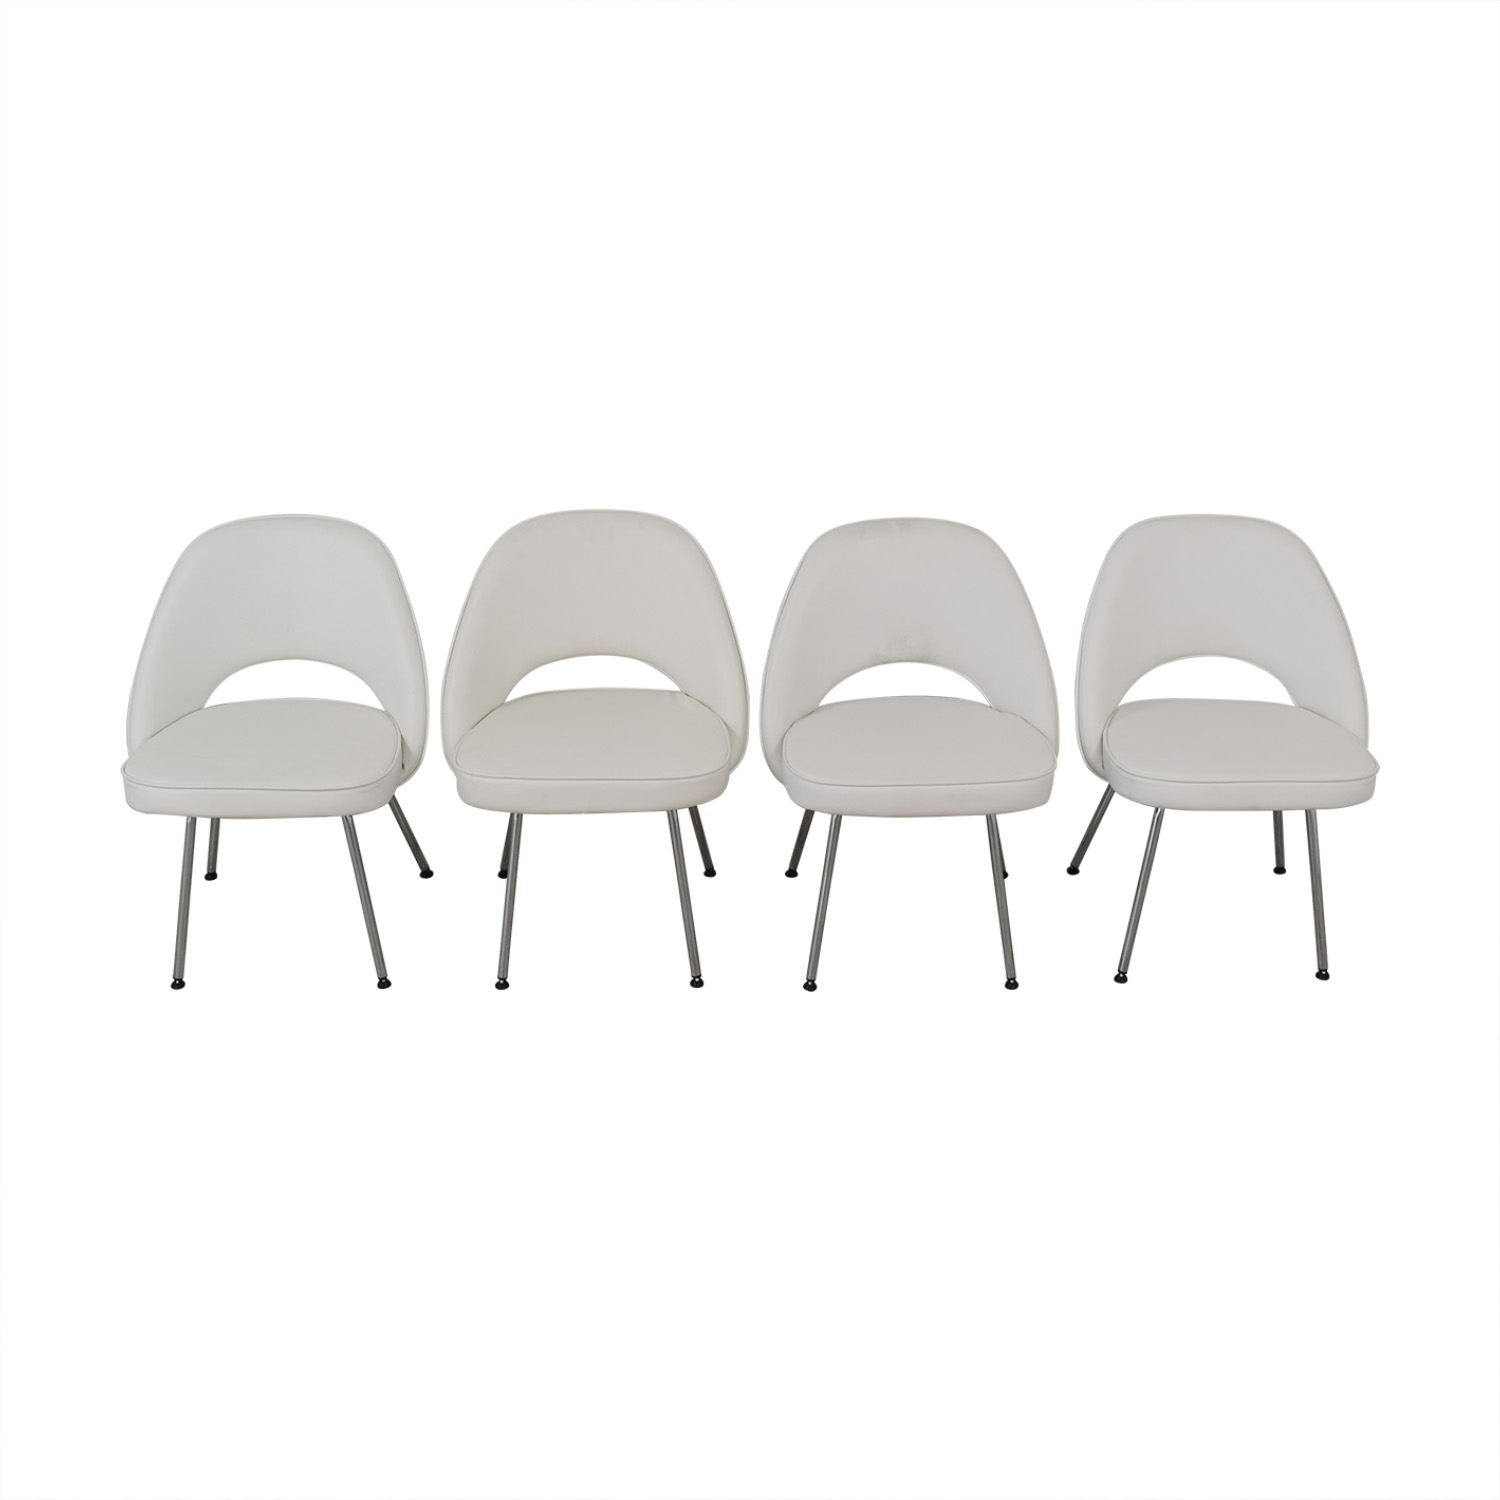 Control Brand Control Brand Leather Dining Chairs Dining Chairs